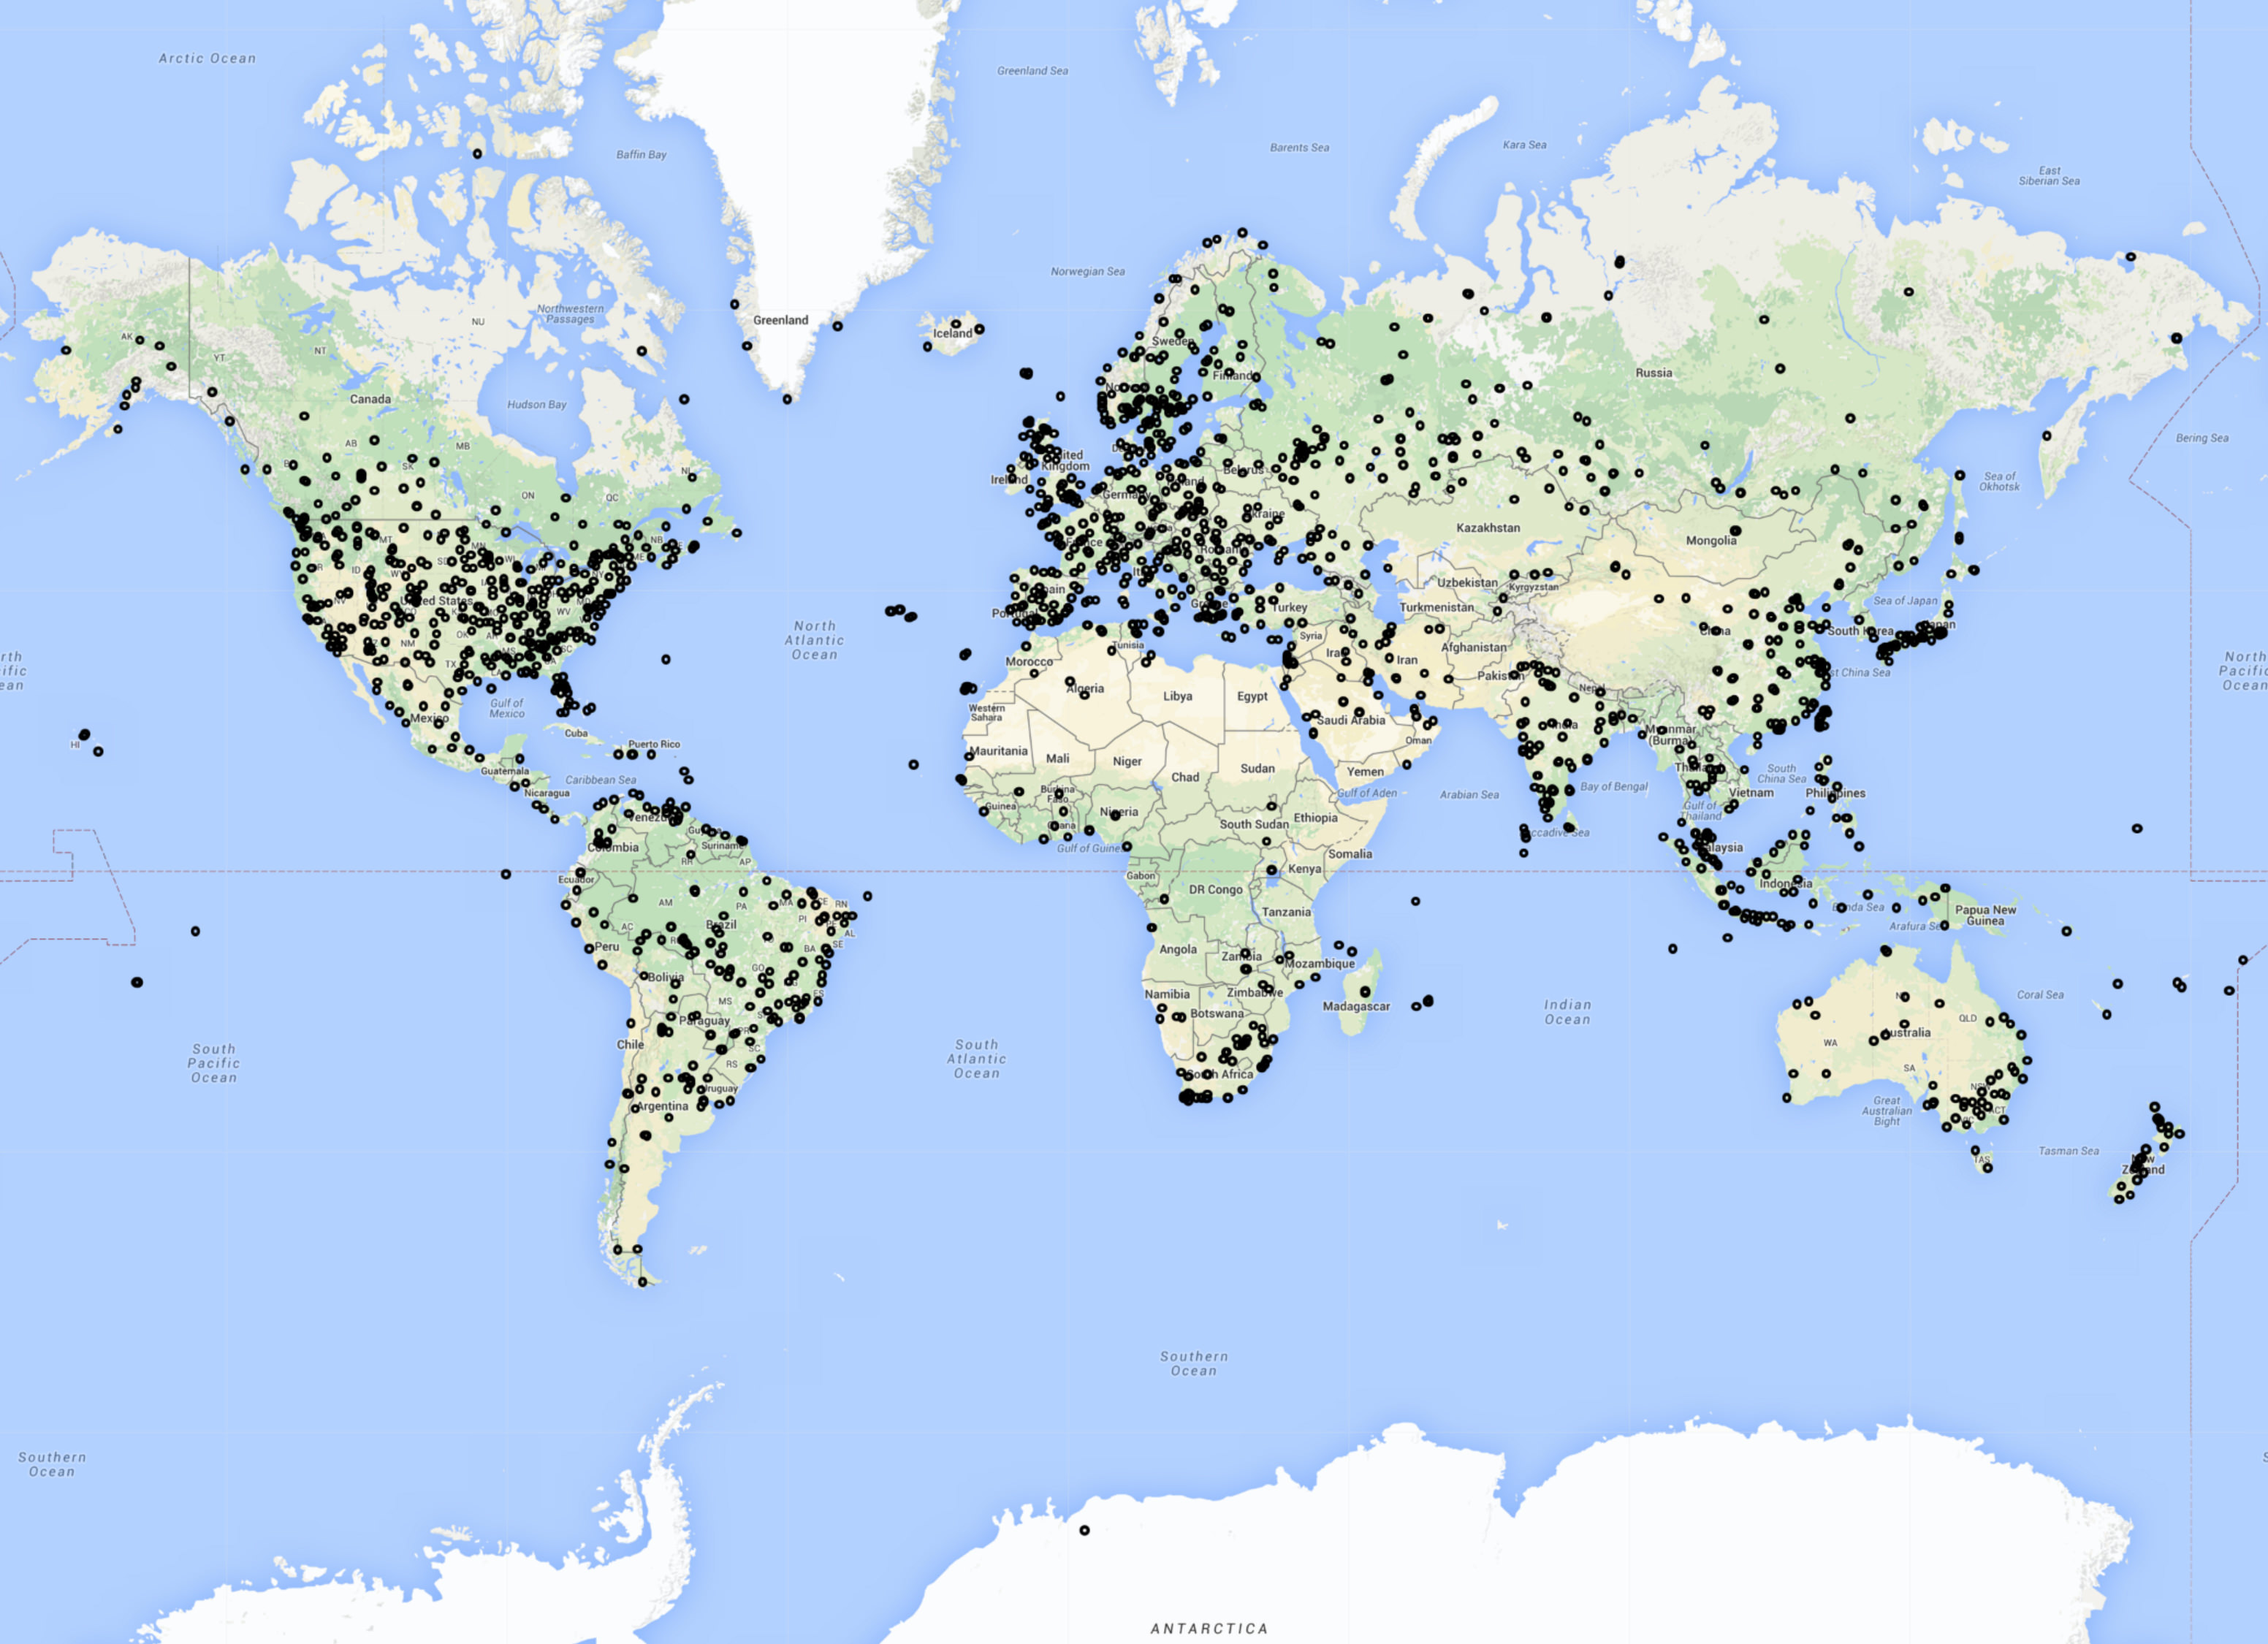 All of the new FR24 ADS-B receivers activated in 2015.